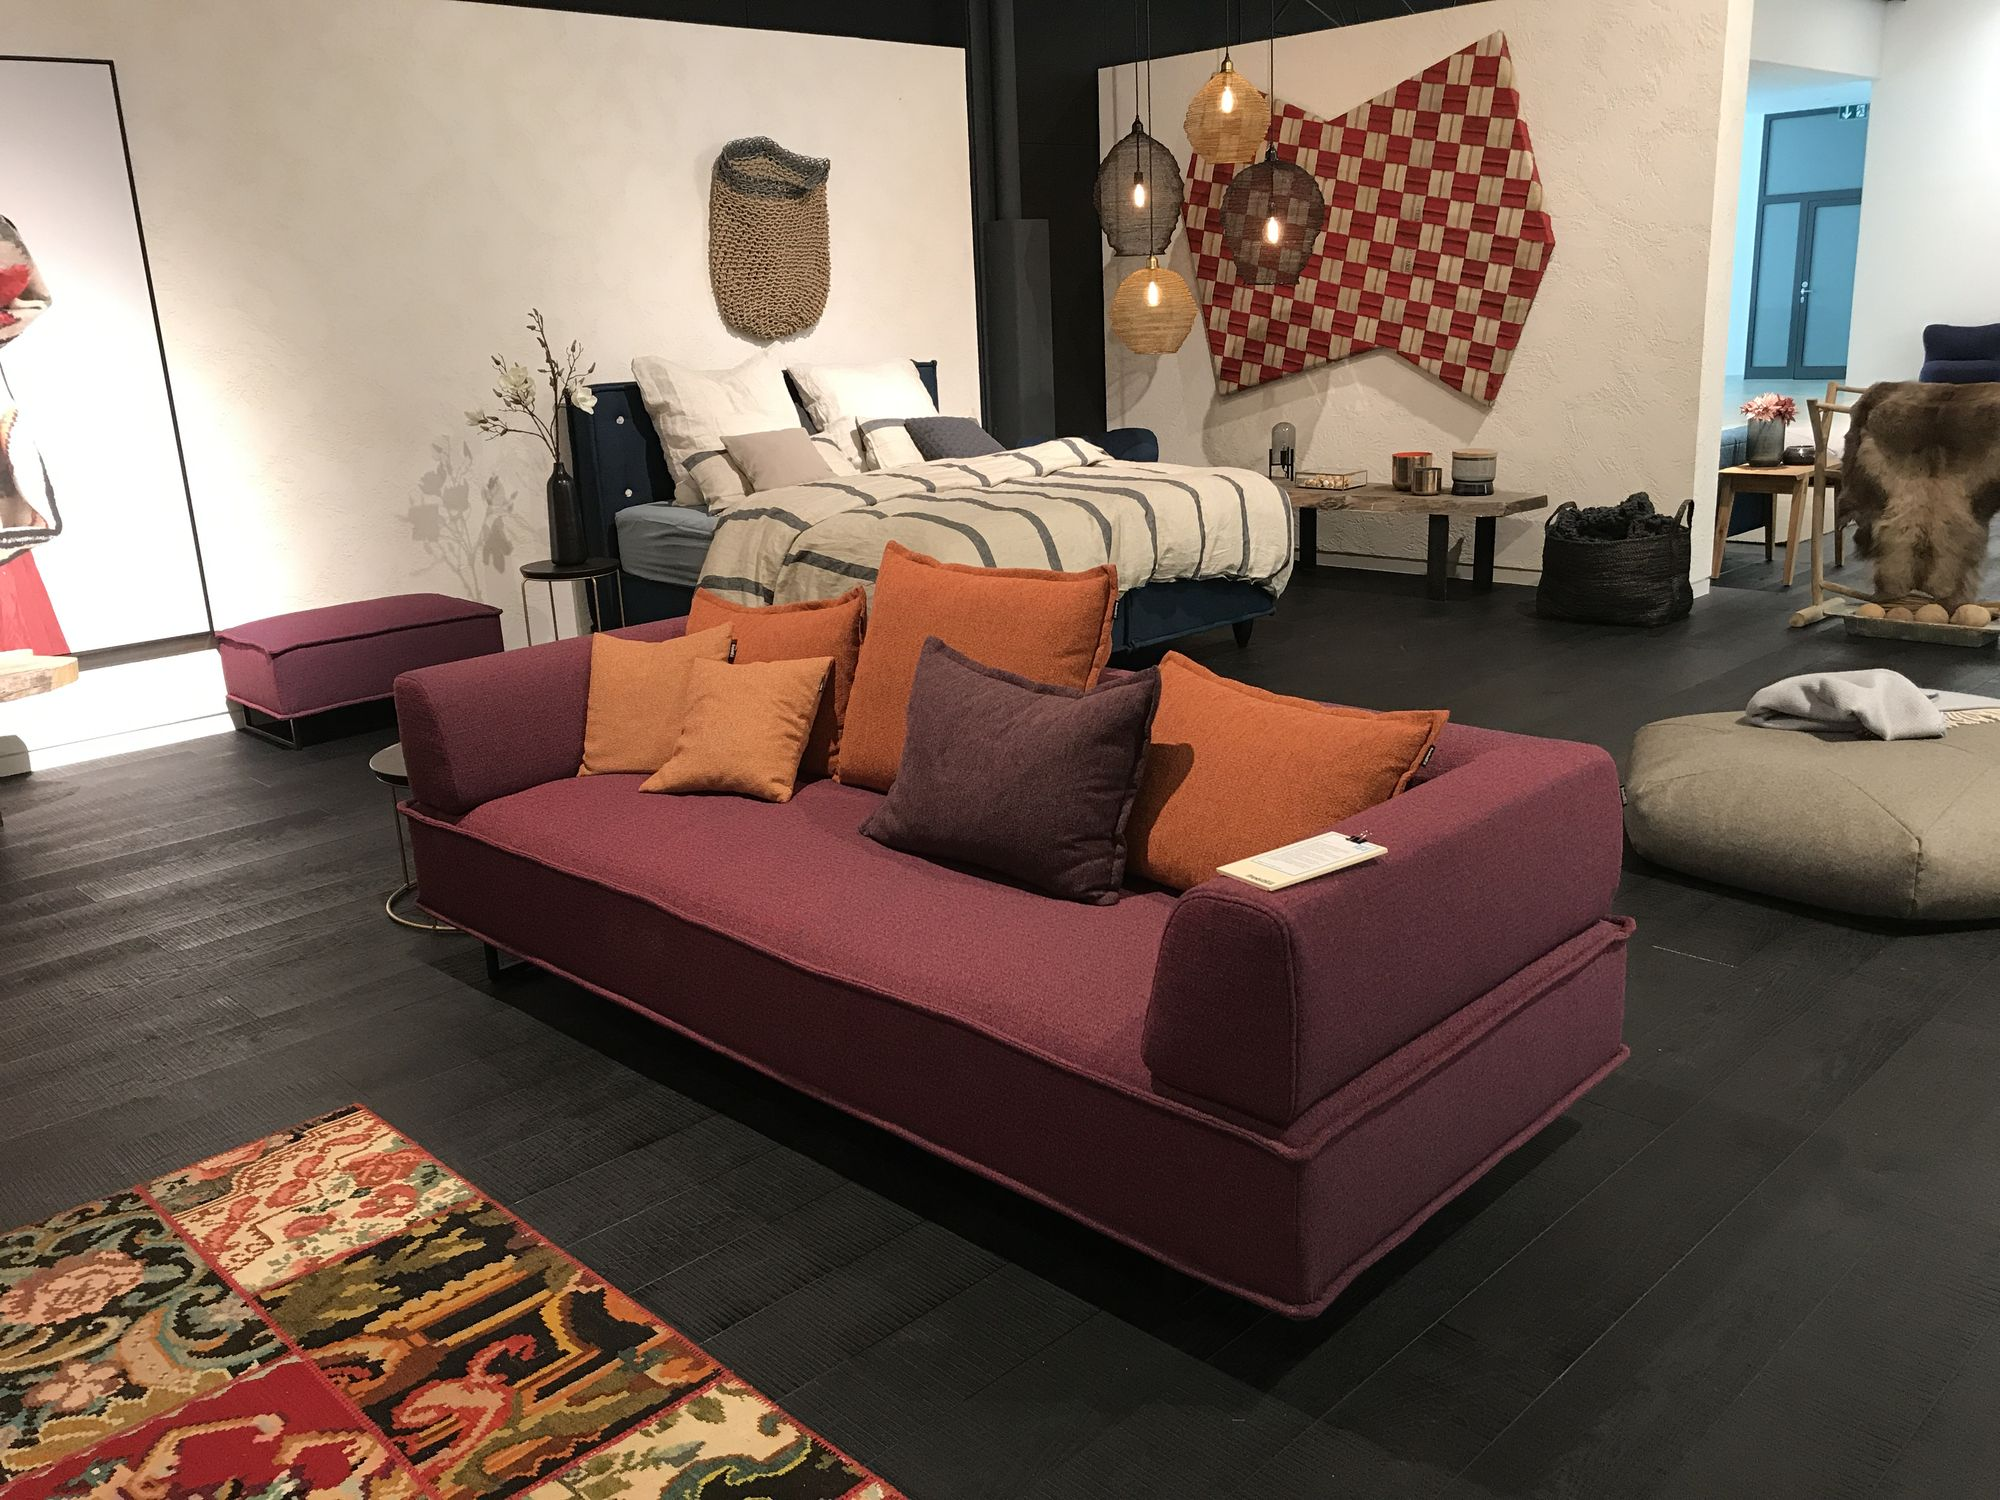 freistil 144 rolf benz sofa in stoff in der farbe violett. Black Bedroom Furniture Sets. Home Design Ideas